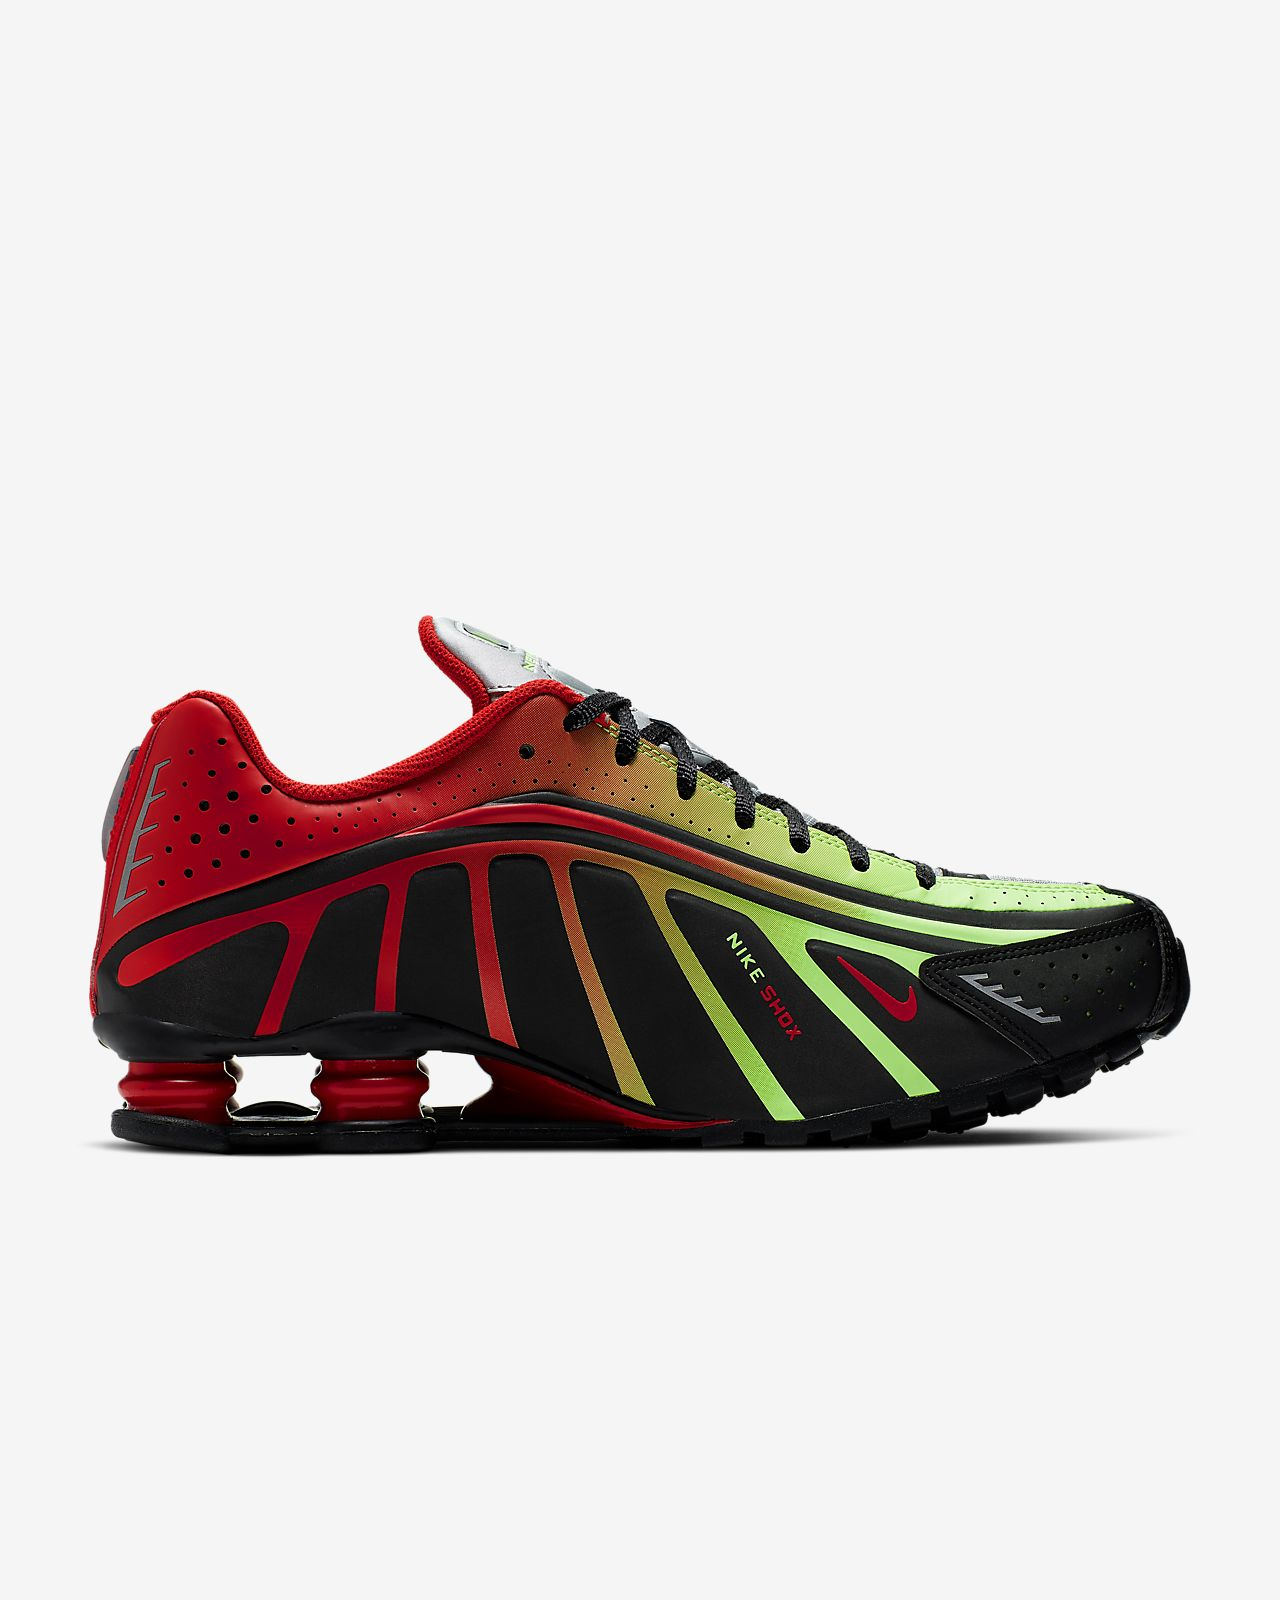 the latest 99944 dee3f ... Nike Shox R4 Neymar Jr. Shoe